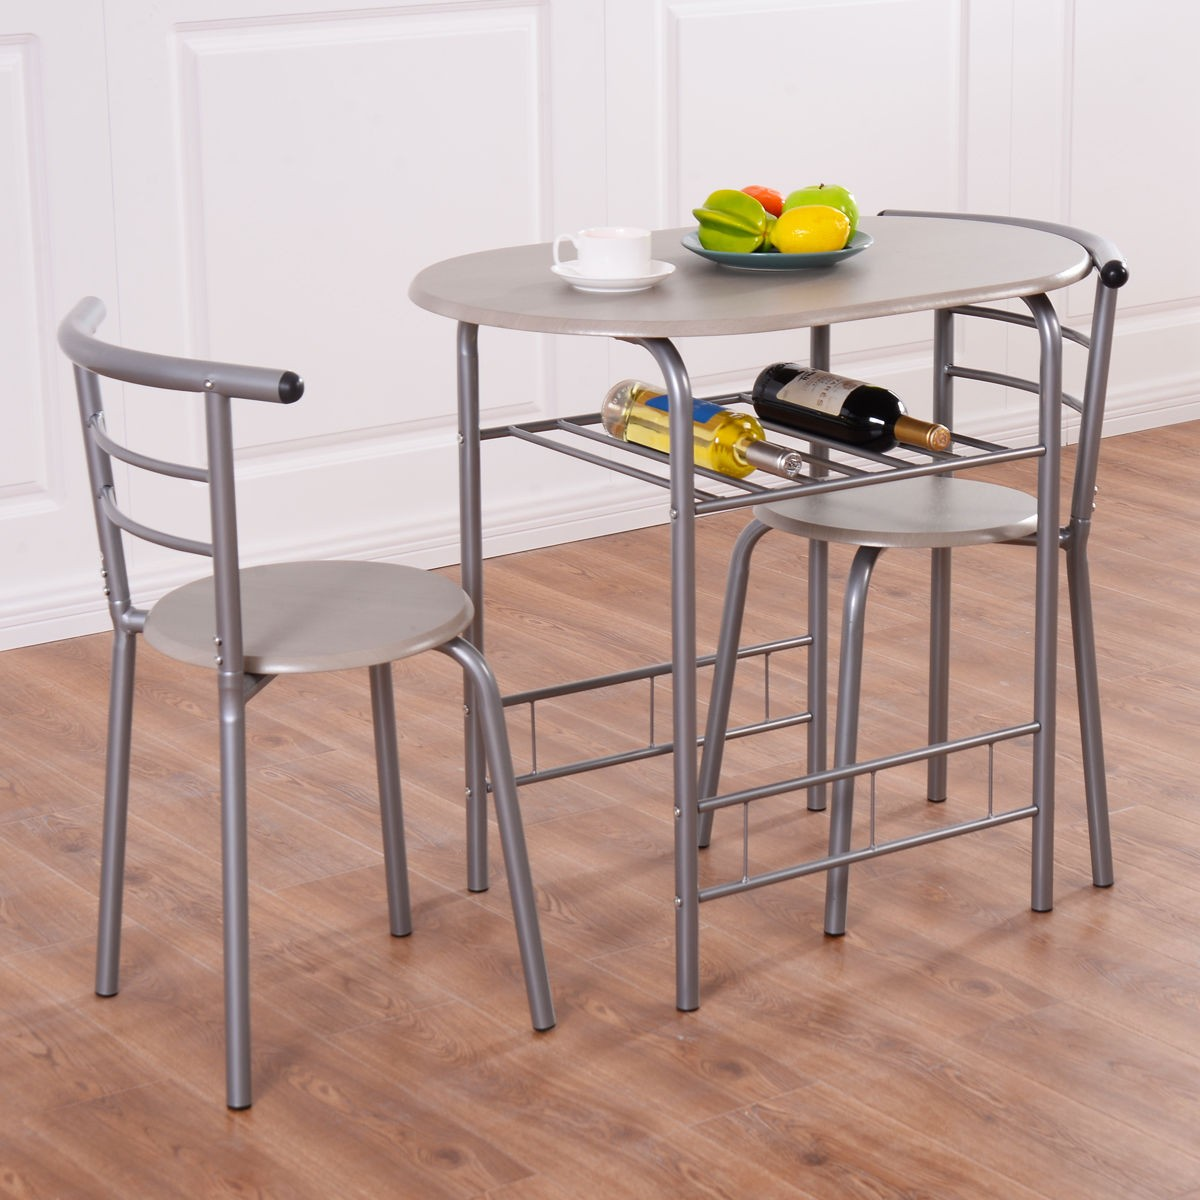 Small bistro table indoor v42 bistro table small eclectic indoor pub and bistro tables by - Bistro sets for small spaces collection ...